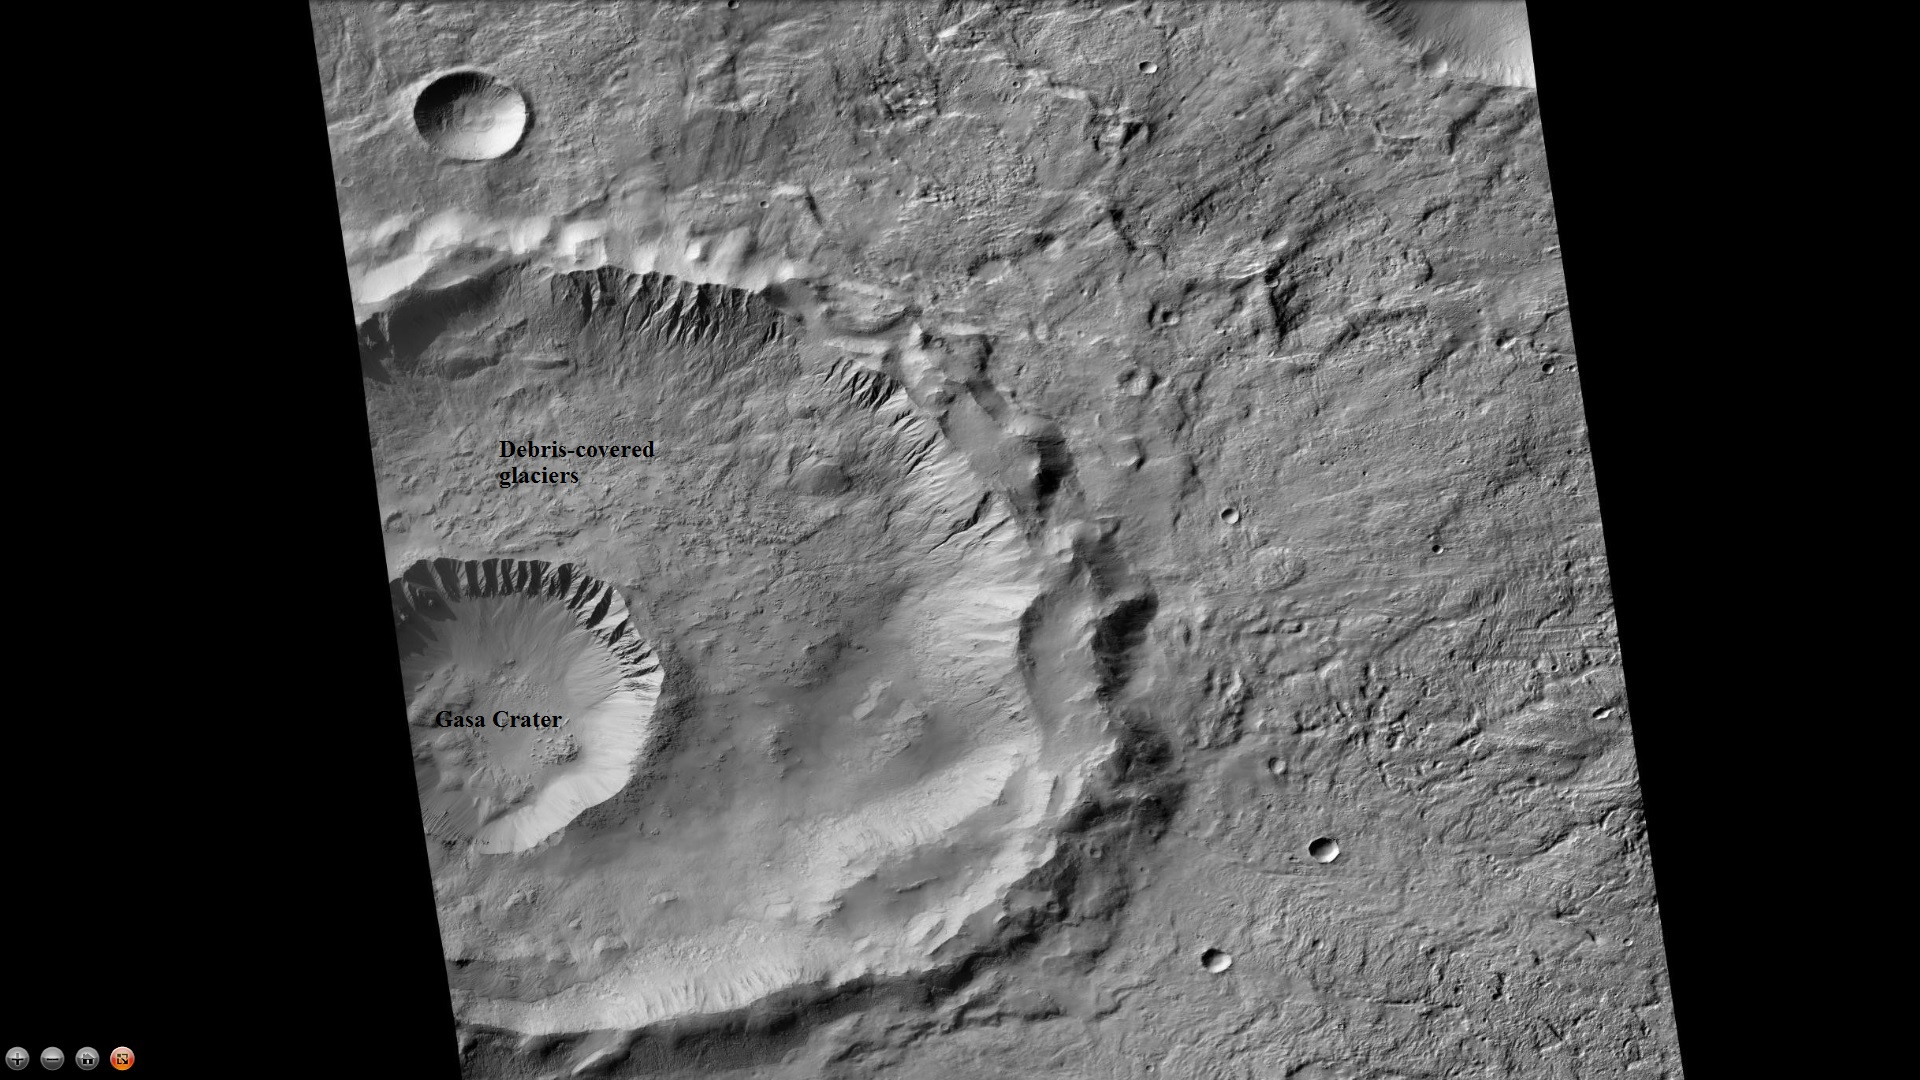 Gasa Crater, as seen by CTX Note: Gasa Crater is the smaller crater. It is believed the impact that created Gasa occurred in a debris-covered glacier.